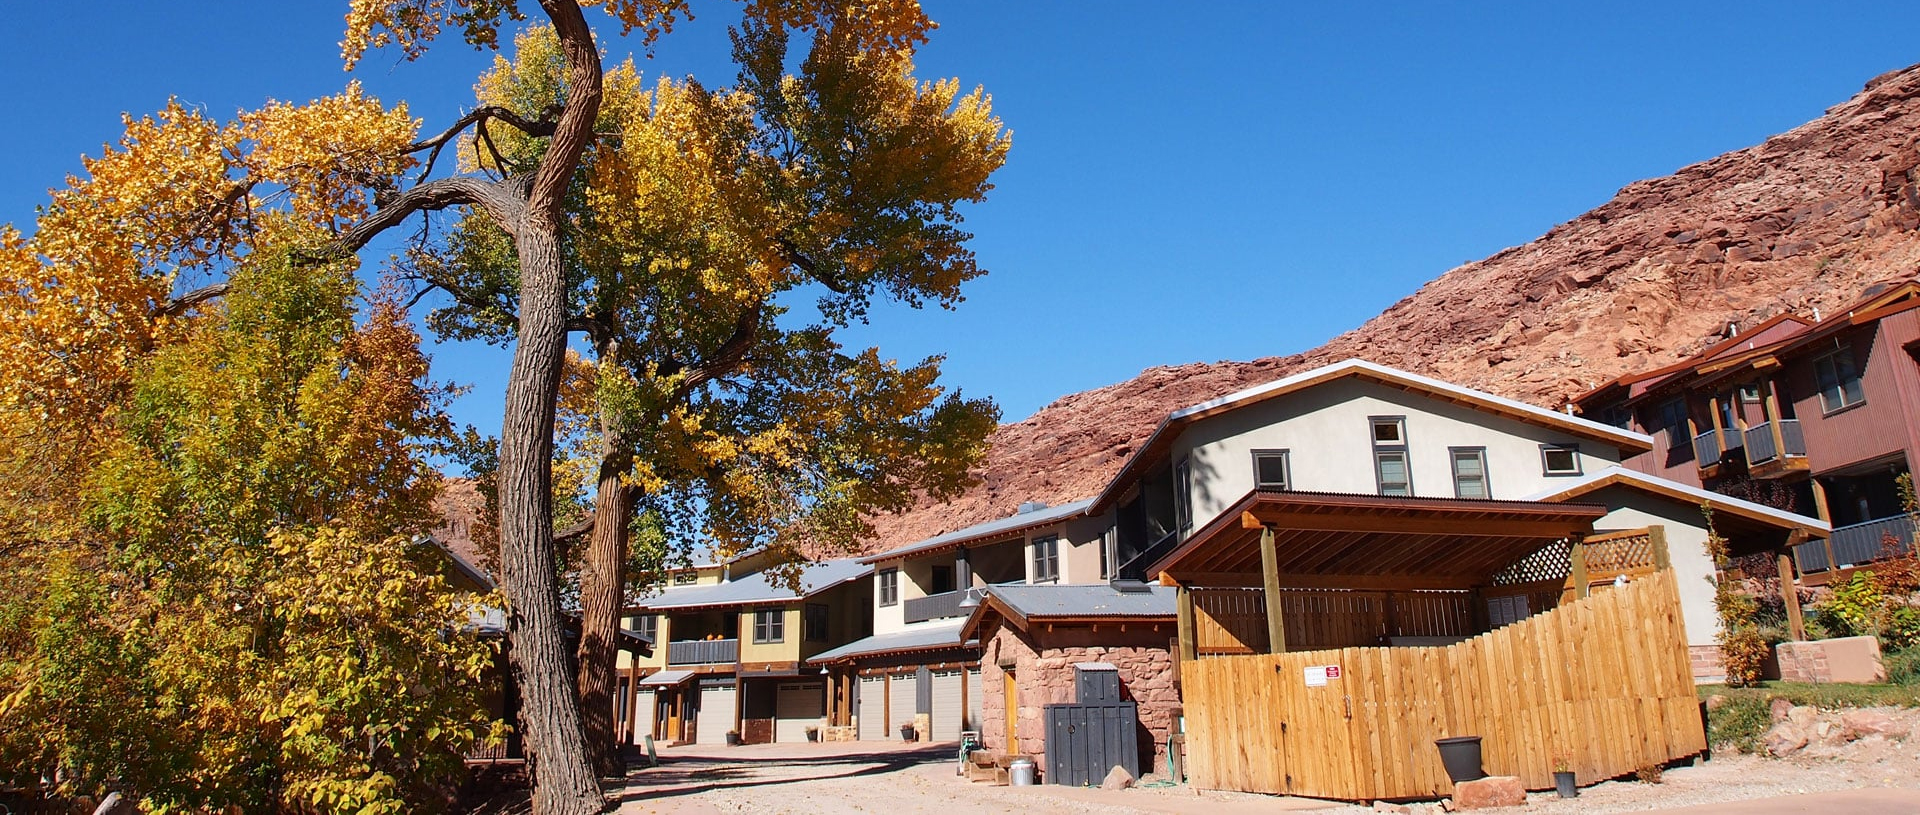 Tall majestic trees bearing orange and yellow leaves tower above triangular shaped roofs of townhomes at Moab Springs Ranch under bright blue skies.